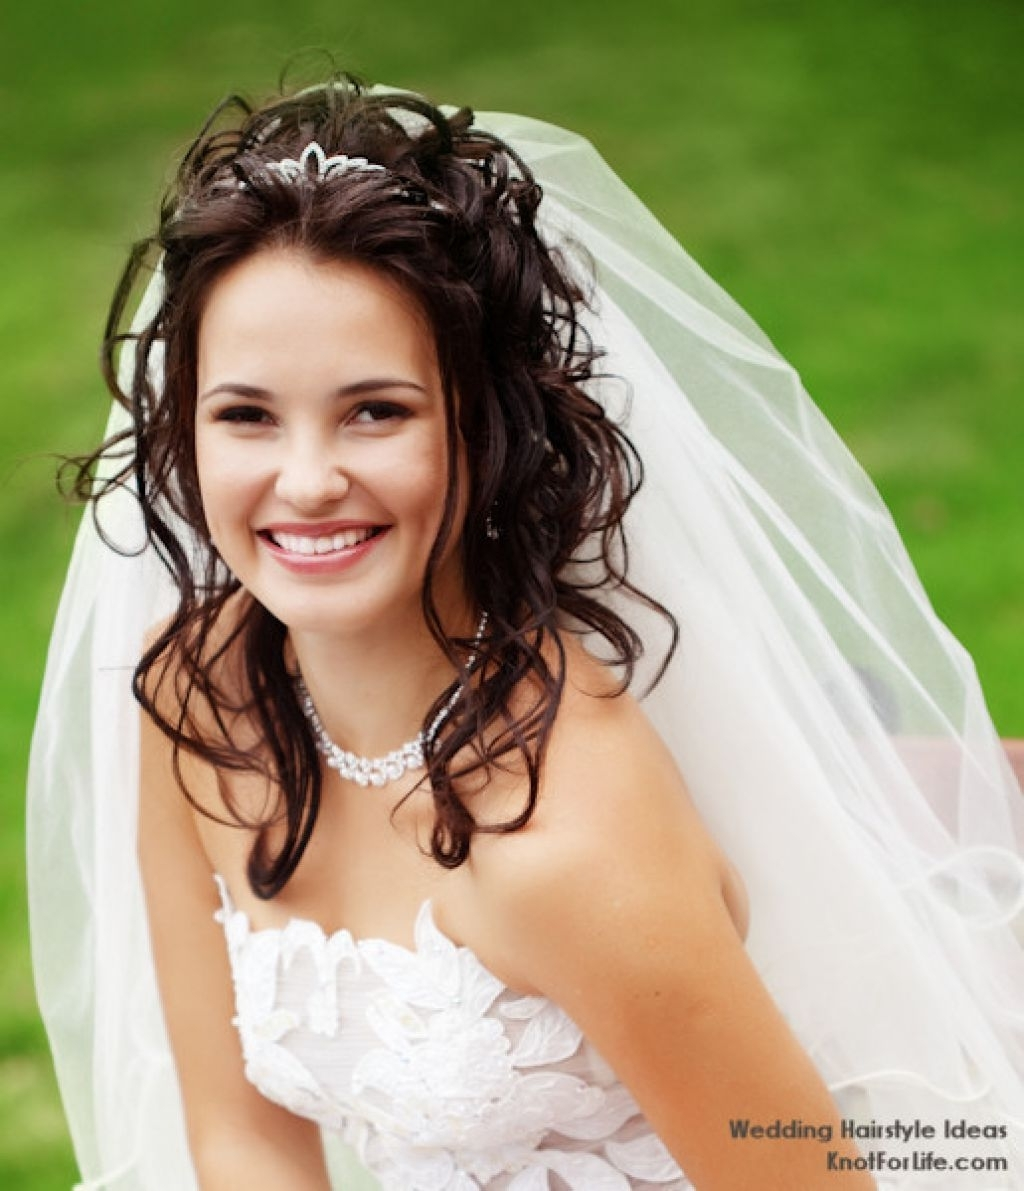 Newest Wedding Hairstyles For Long Hair With Veil And Tiara Throughout Beautiful Styles Of Wedding Hairstyles With Veils And Tiaras (View 5 of 15)